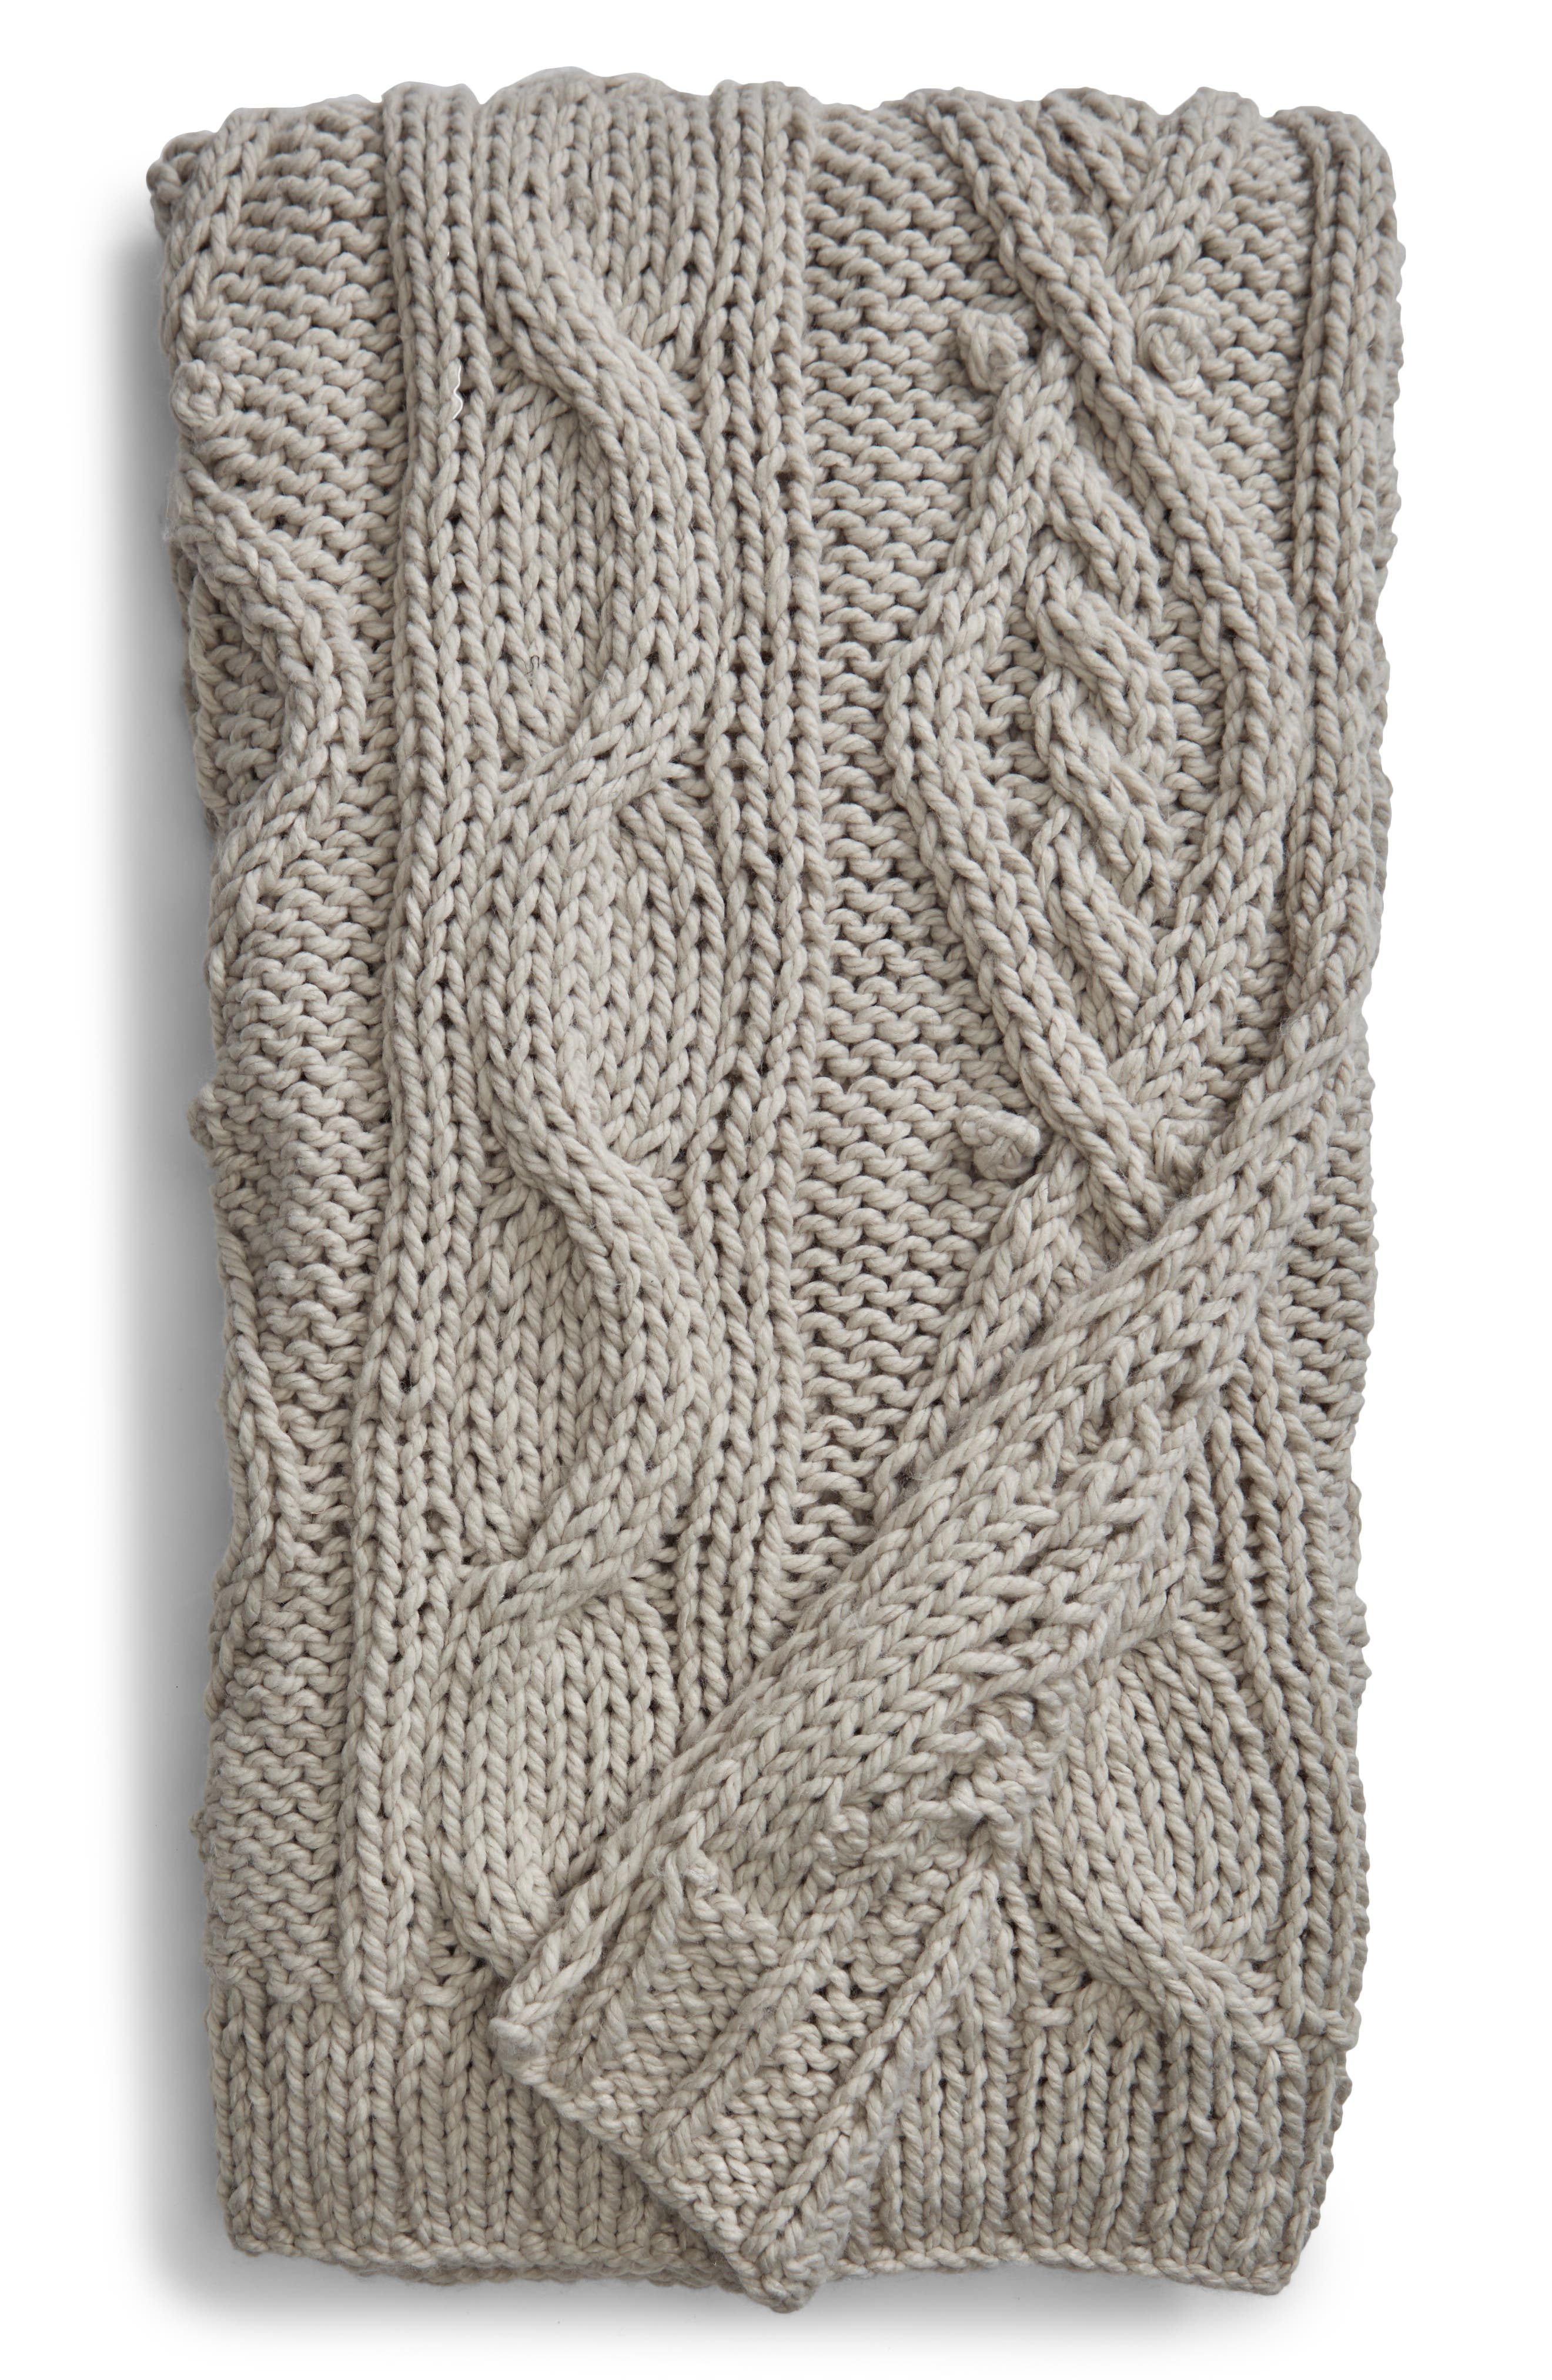 Chunky Cable Knit Throw Blanket,                         Main,                         color, 020